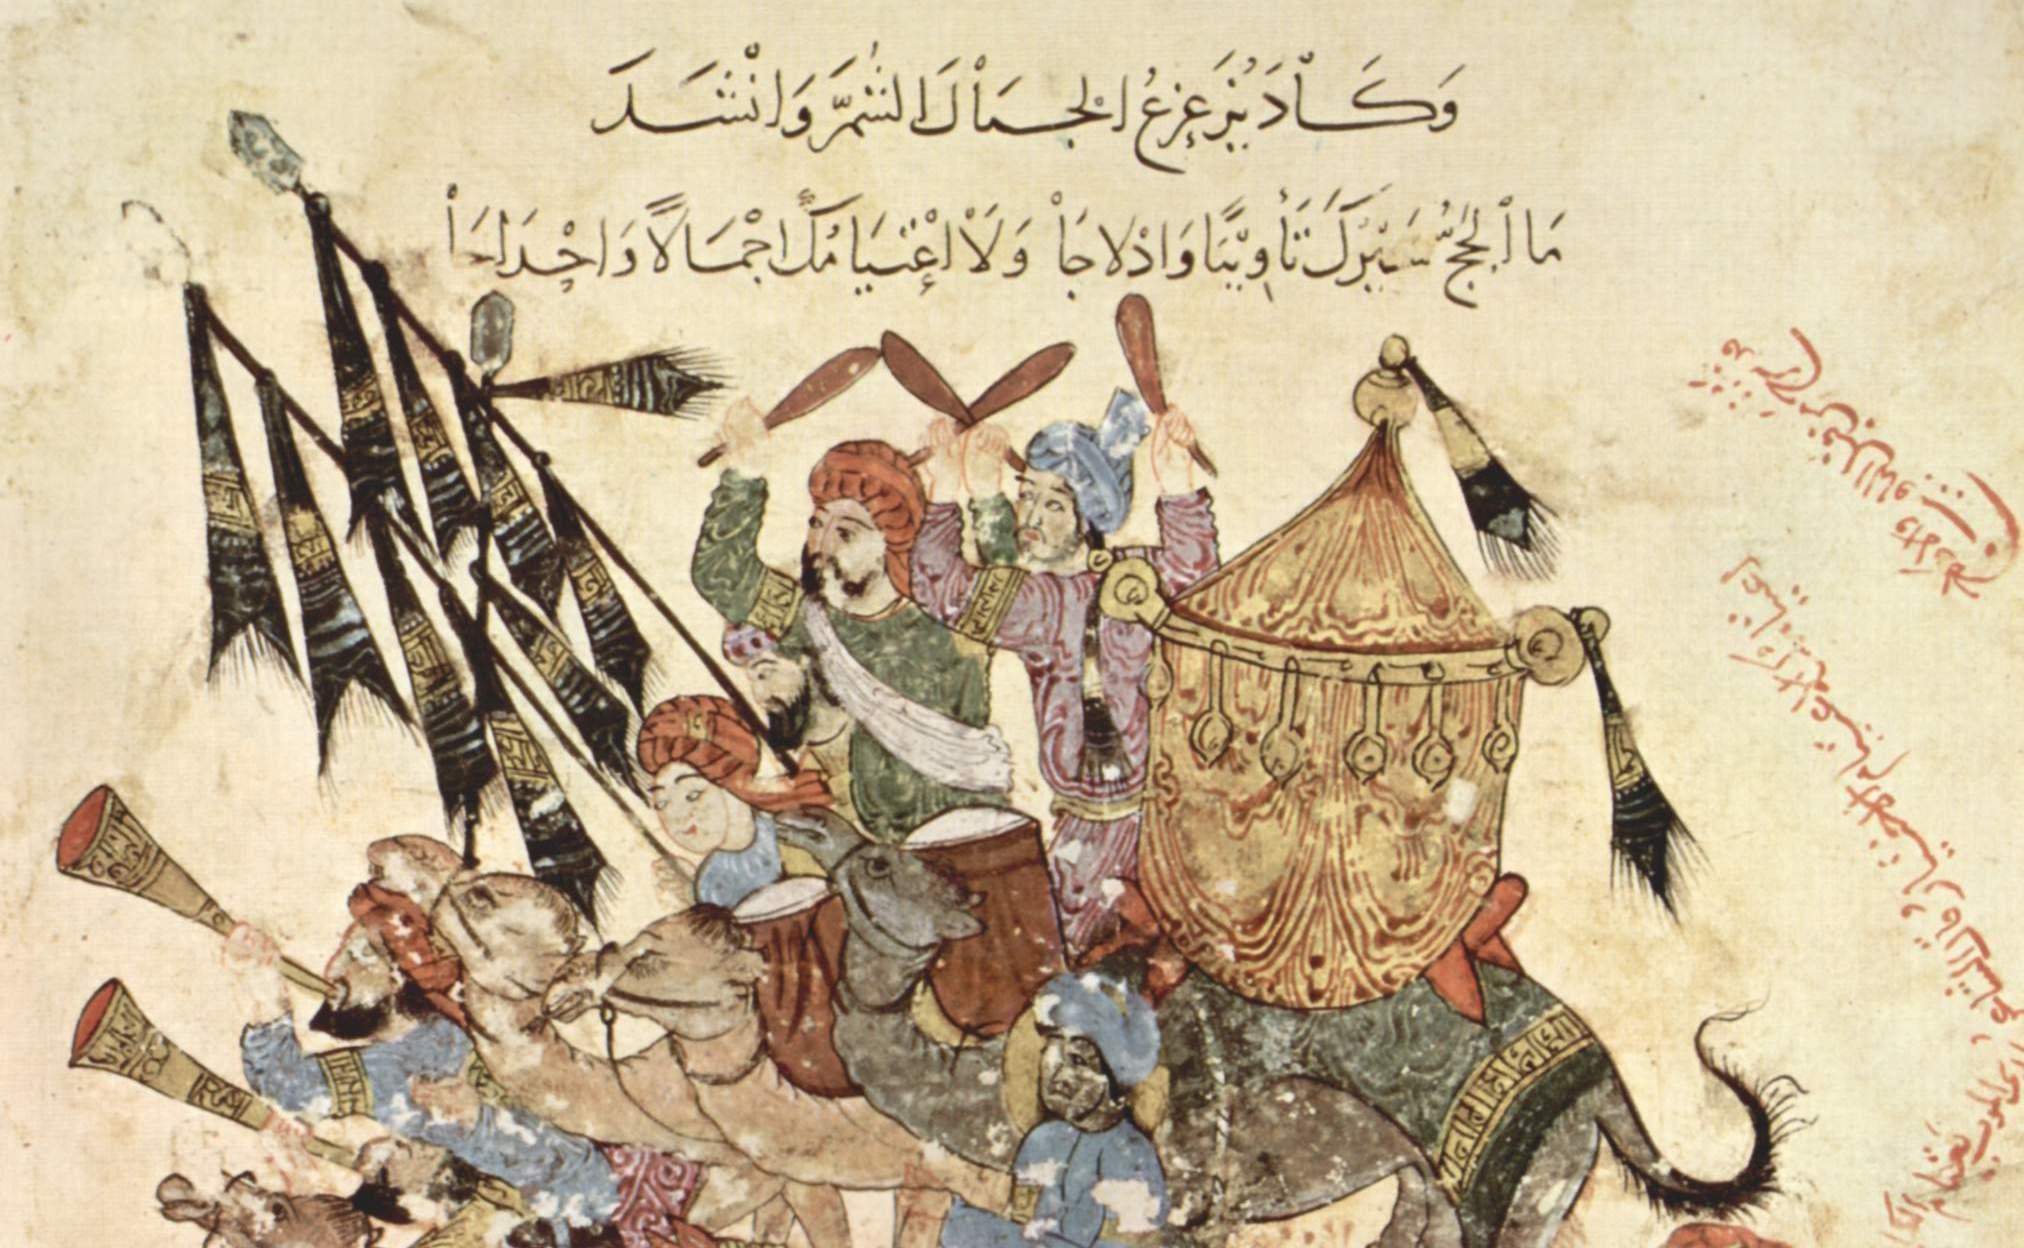 ibn battutahs travels essay Ibn battuta in china essay  ibn battuta's travels have almost been delegated into the oblivion if the world continued seeing history through the western view.